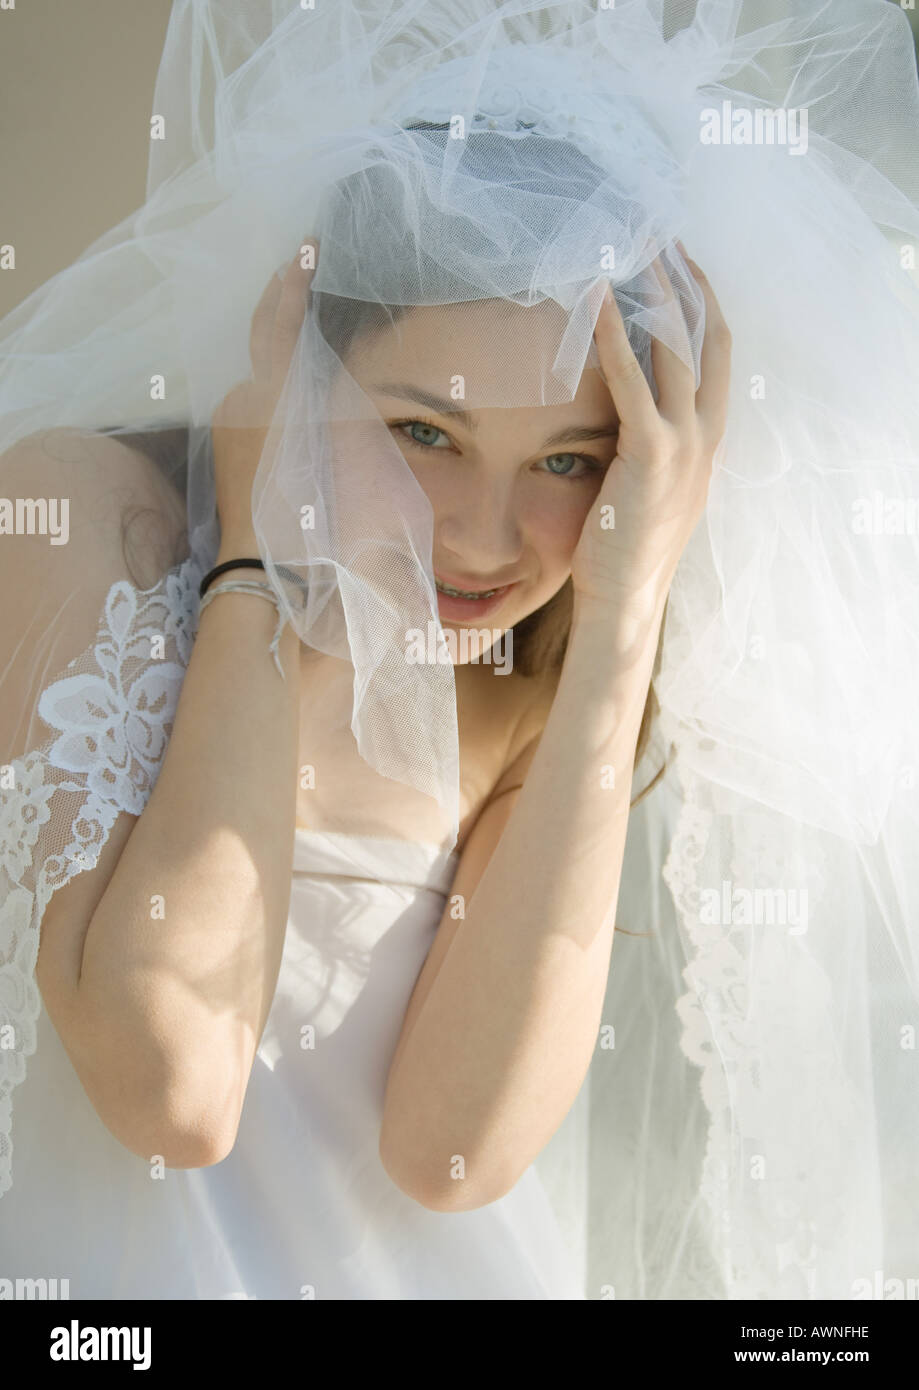 Preteen girl dressed up as bride - Stock Image